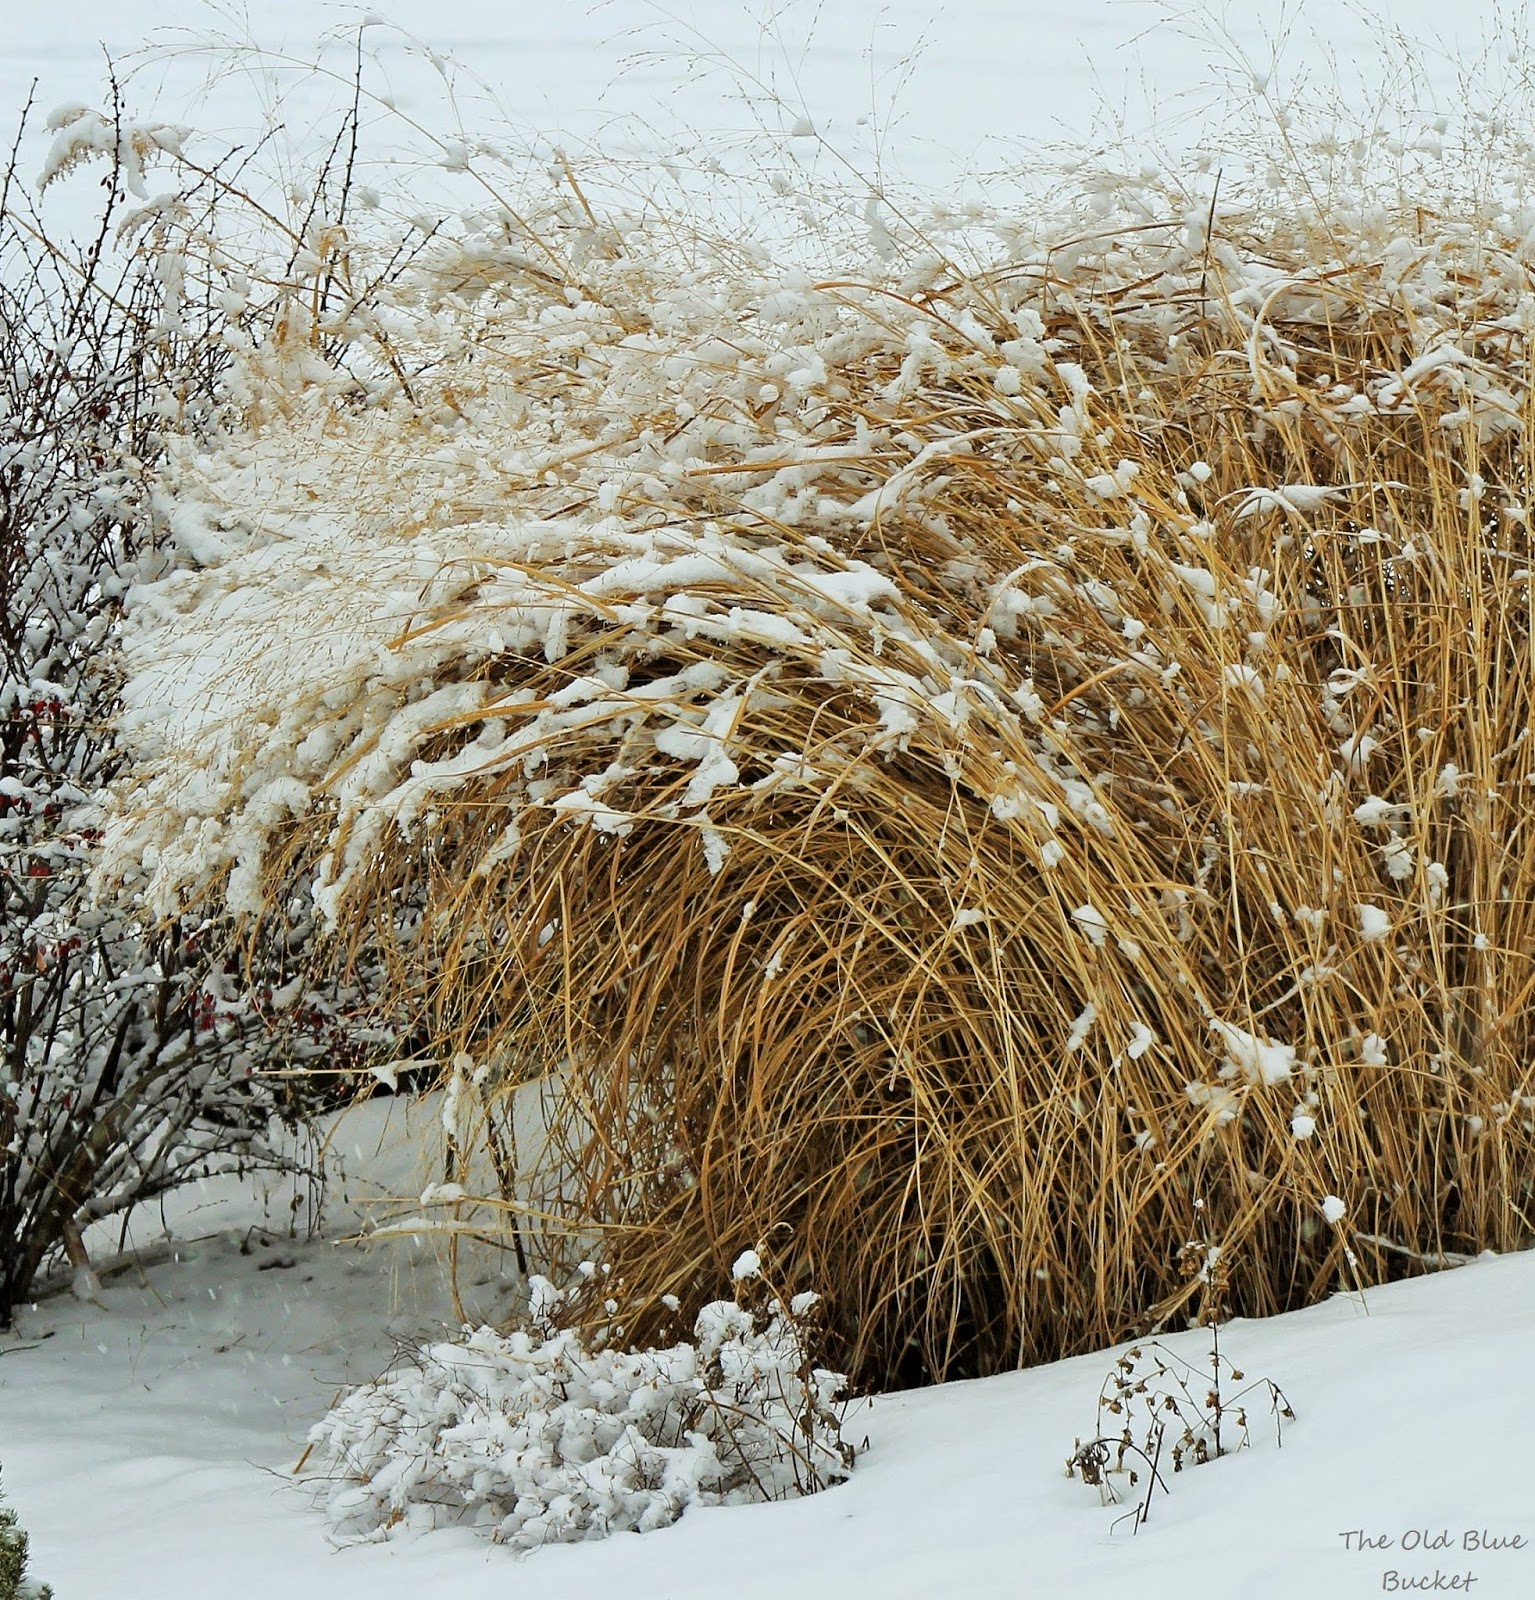 The Old Blue Bucket: Saying Goodbye To Winter In The Garden